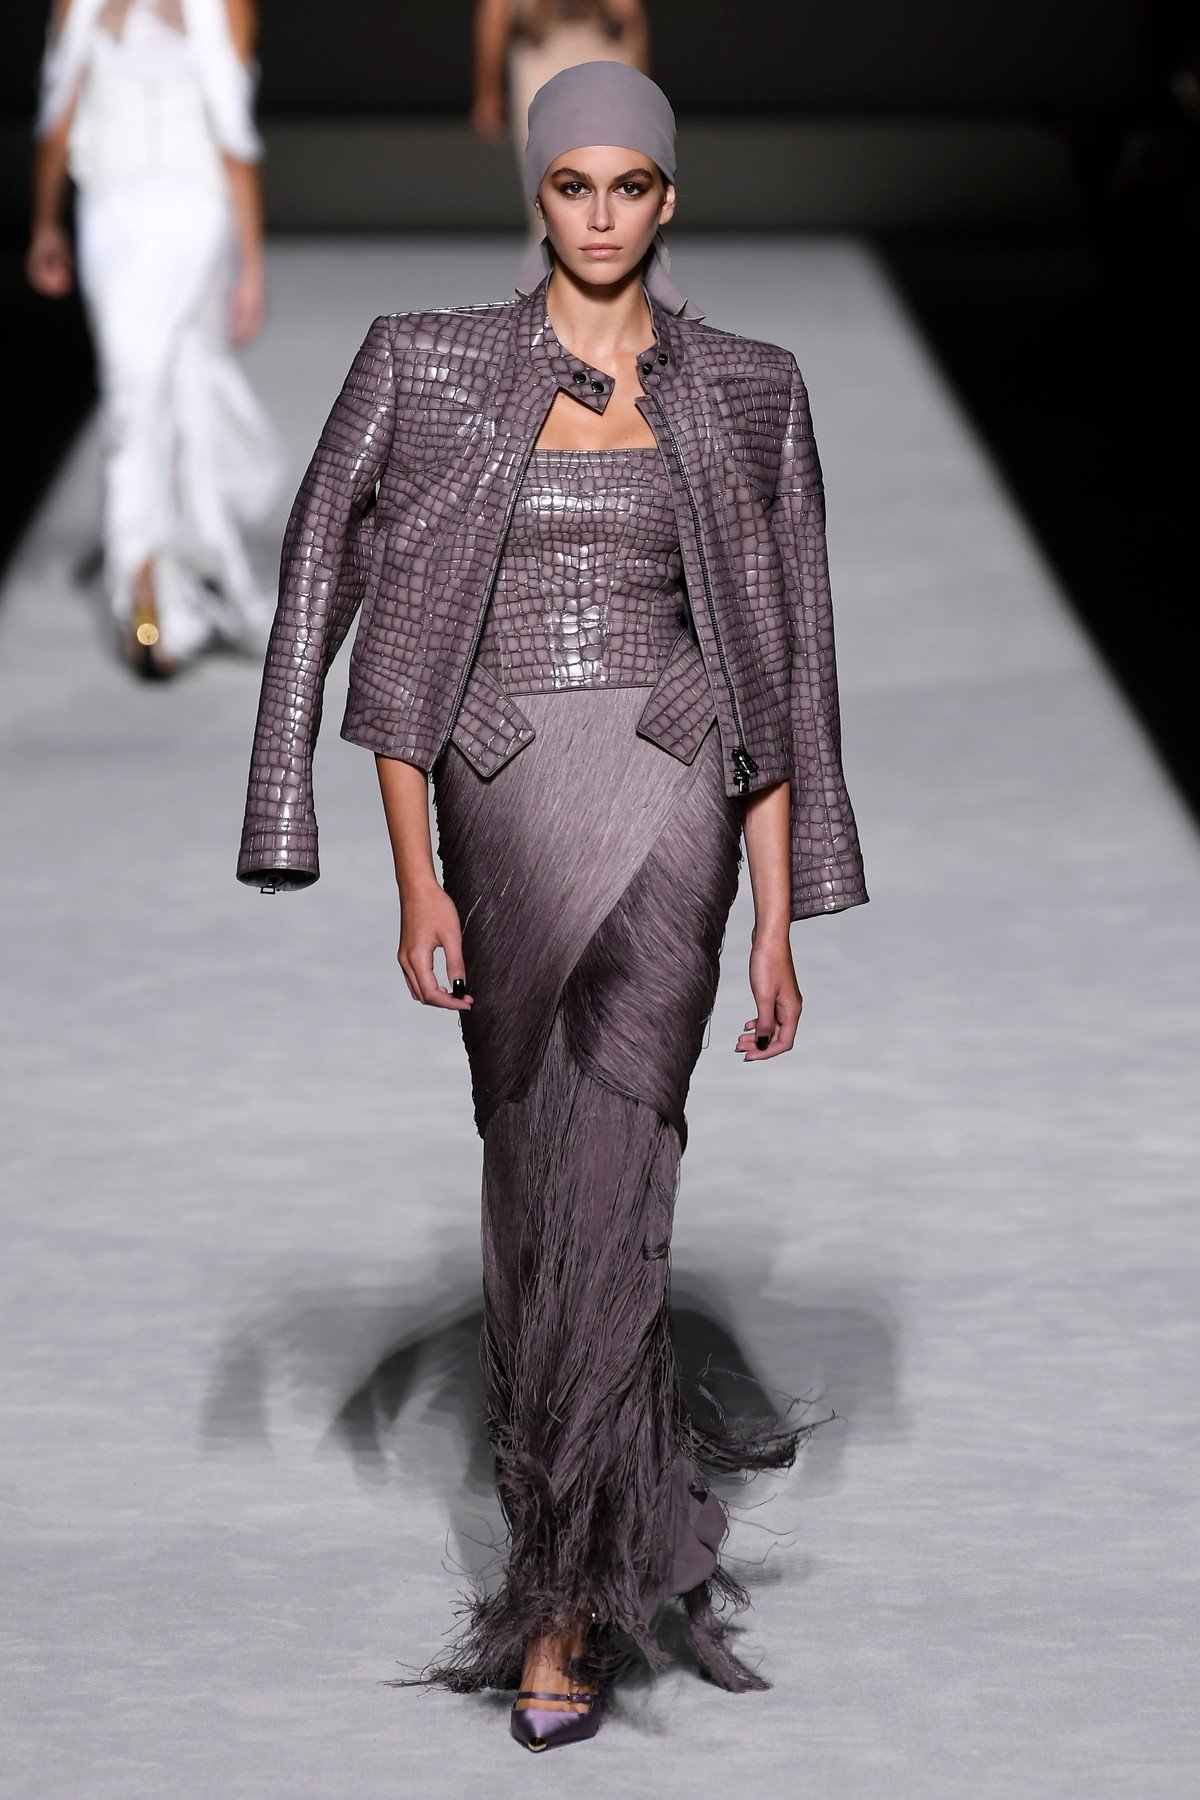 Kaia Gerber on the catwalk Tom Ford show, Runway, Spring Summer 2019, New York Fashion Week, USA - 05 Sep 2018, Image: 385460517, License: Rights-managed, Restrictions: , Model Release: no, Credit line: Profimedia, TEMP Rex Features